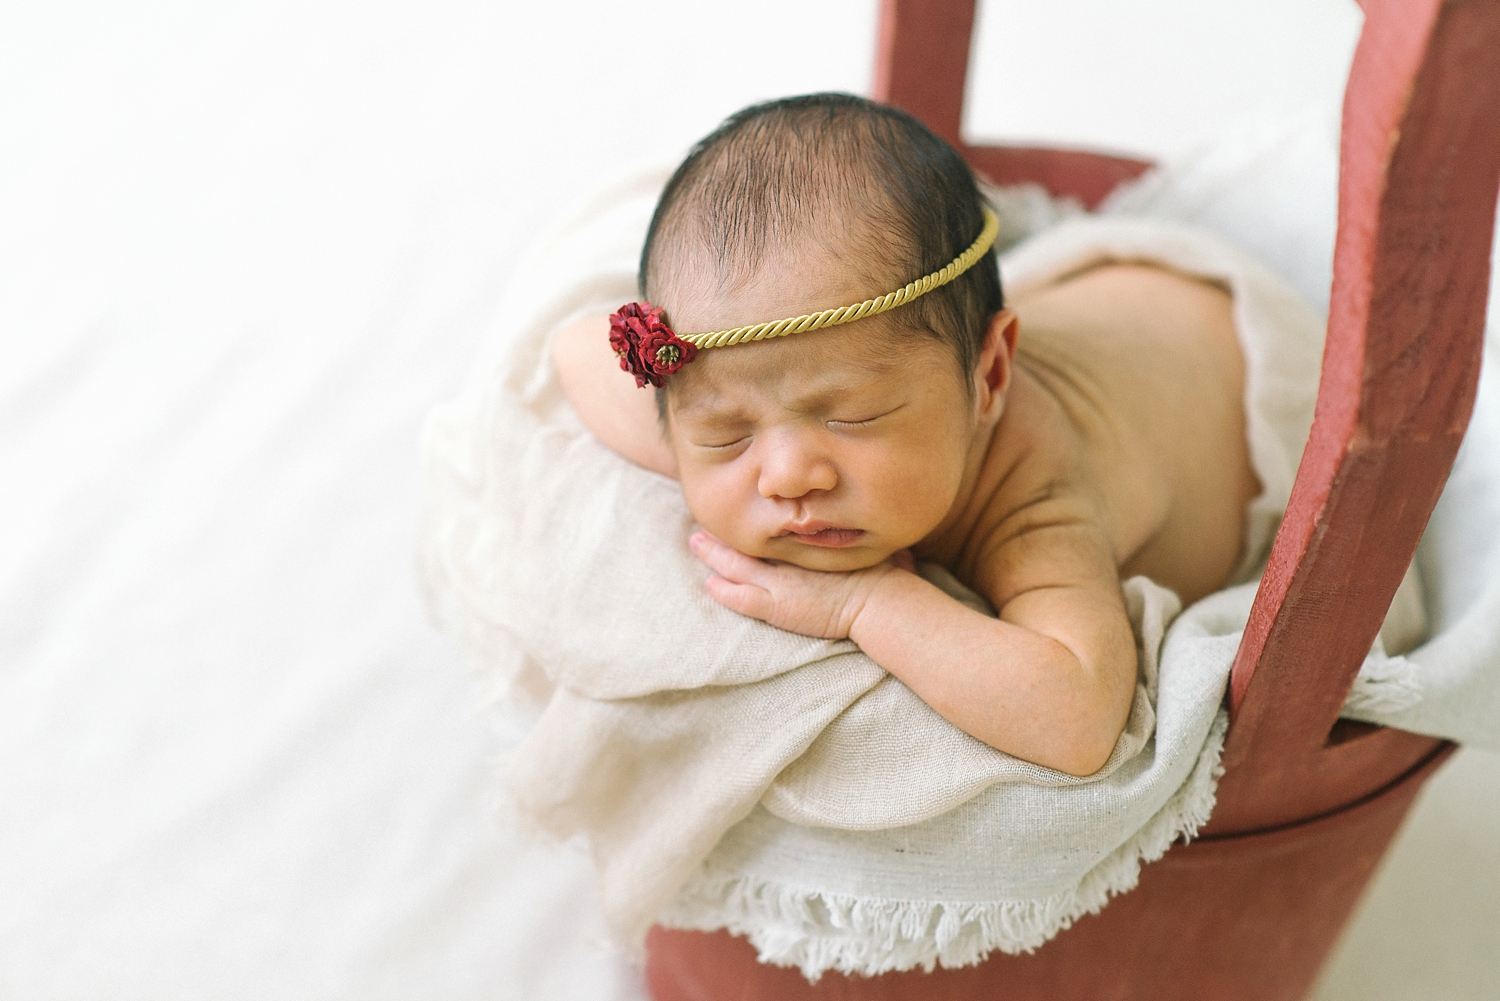 portland-oregon-newborn-photographer-sleeping-baby-girl-red-basket-shelley-marie-photography-3.jpg